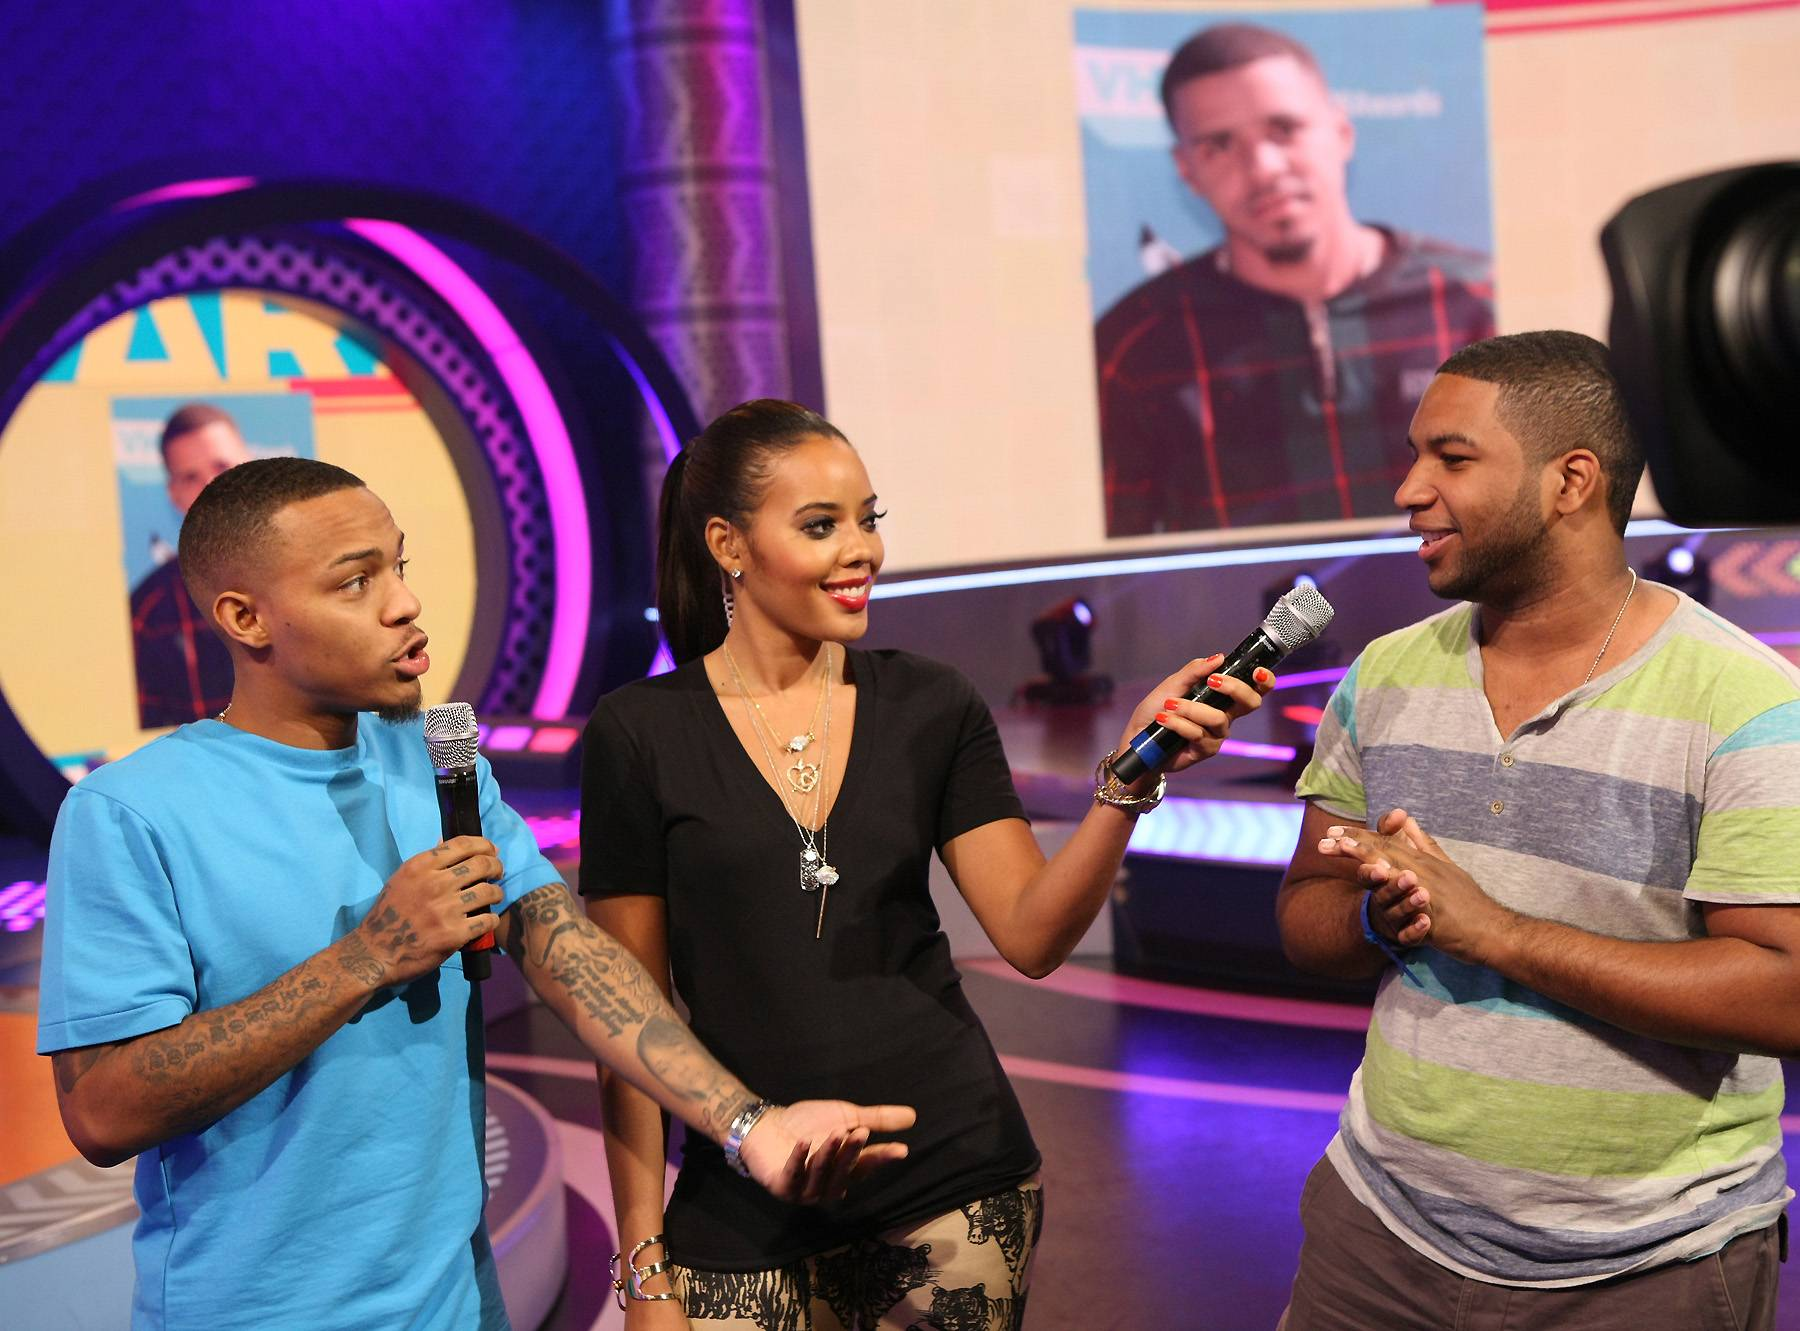 What You Think? - Hosts Angela Simmons and Bow Wow questioning an audience member while on 106. (Photo: Bennett Raglin/BET/Getty Images for BET)